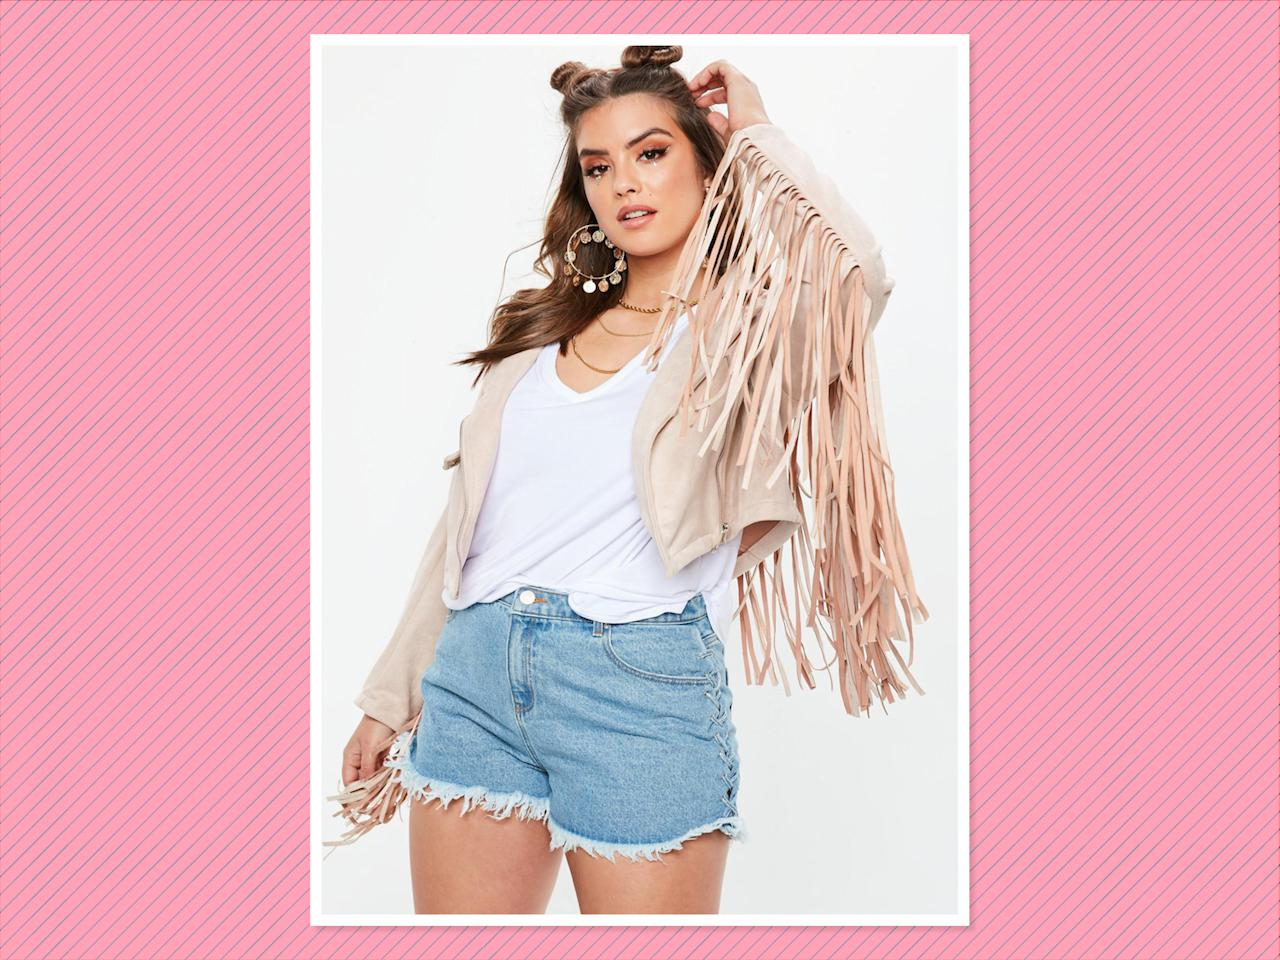 "<p>Curve Stone Faux Suede Fringed Biker Jacket, $77, <a rel=""nofollow"" href=""https://www.missguidedus.com/curve-stone-faux-suede-fringed-biker-jacket-10097460"">Missguided</a> (Photo: Missguided) </p>"